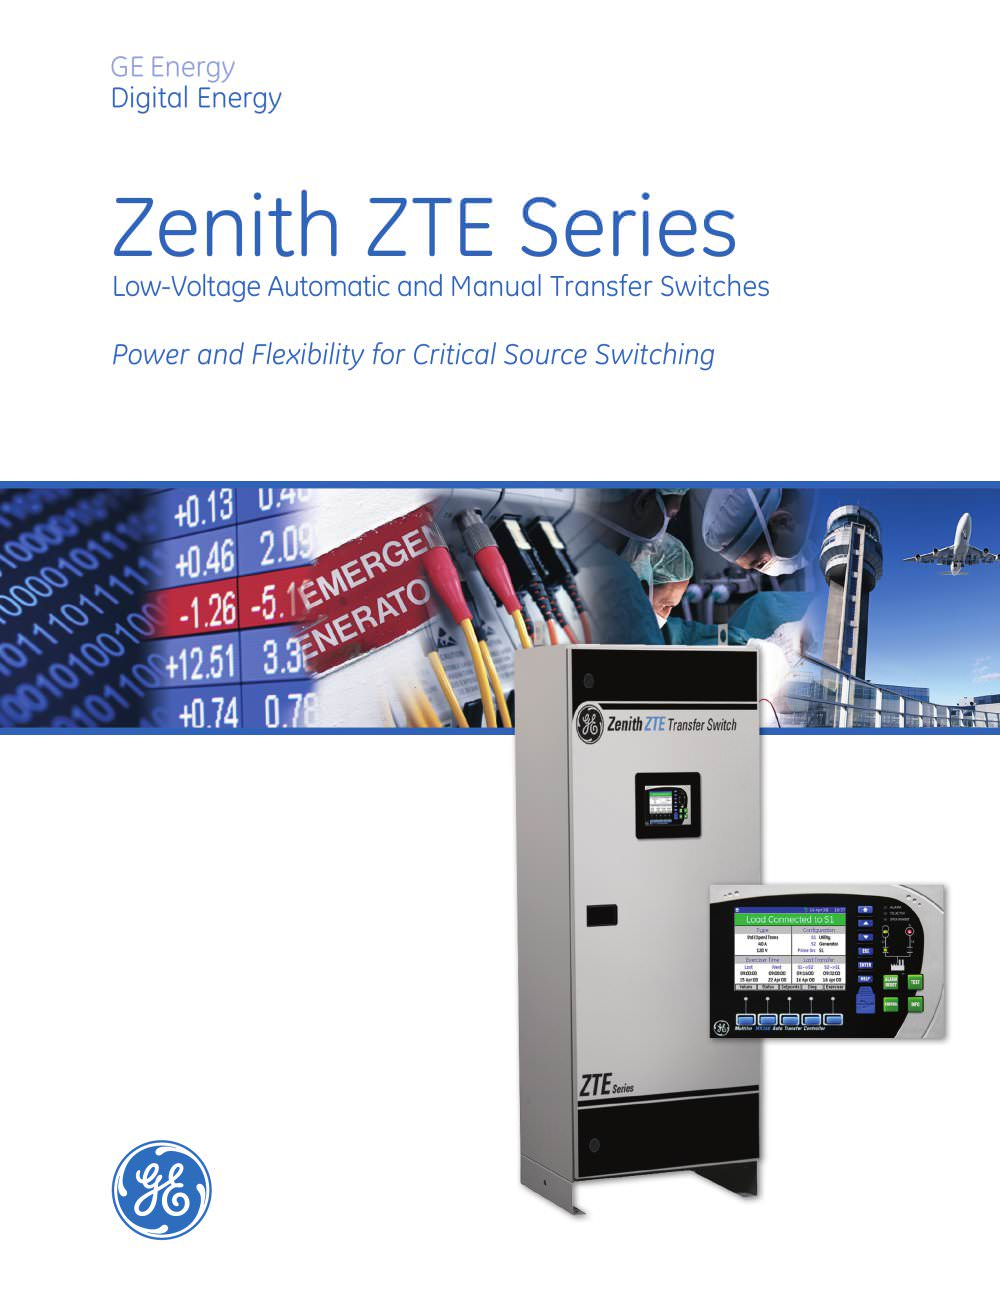 Zenith Zte Series Low Voltage Automatic Manual Transfer Switche Switch 1 24 Pages